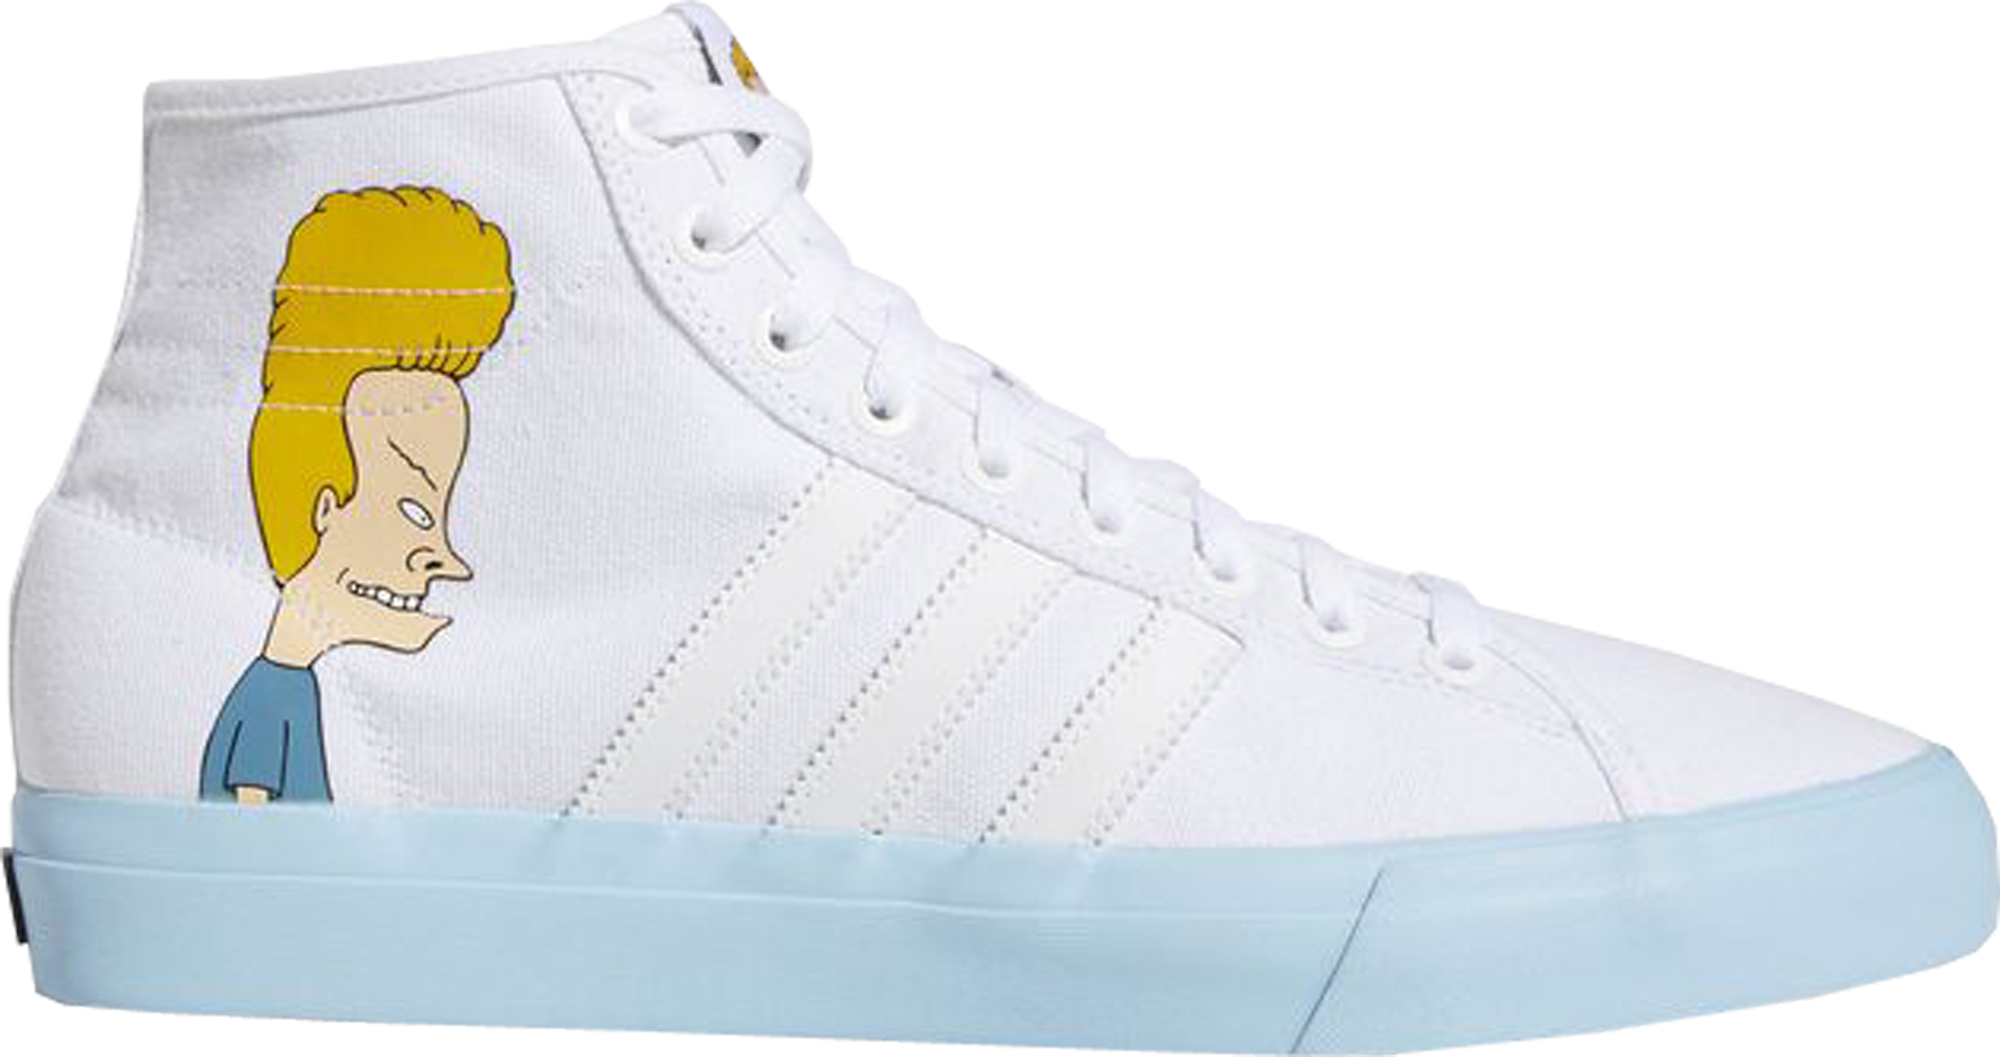 adidas Matchcourt Hi Beavis and Butt-head